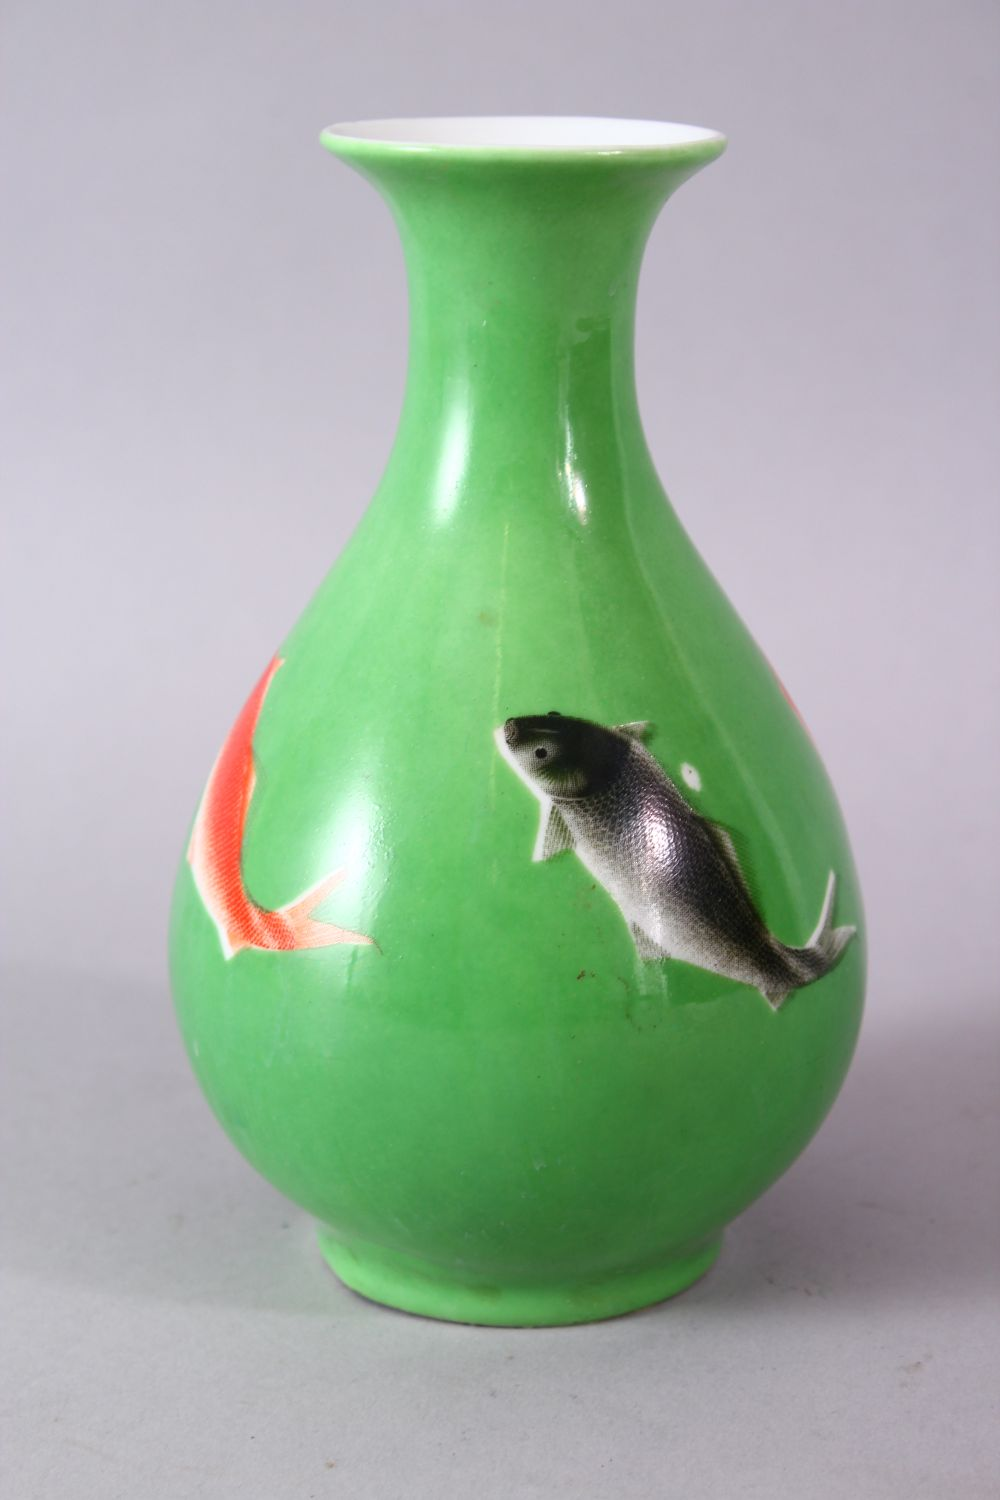 A CHINESE GREEN GLAZED VASE, painted with fish, mark in red, 15cm high. - Image 4 of 8